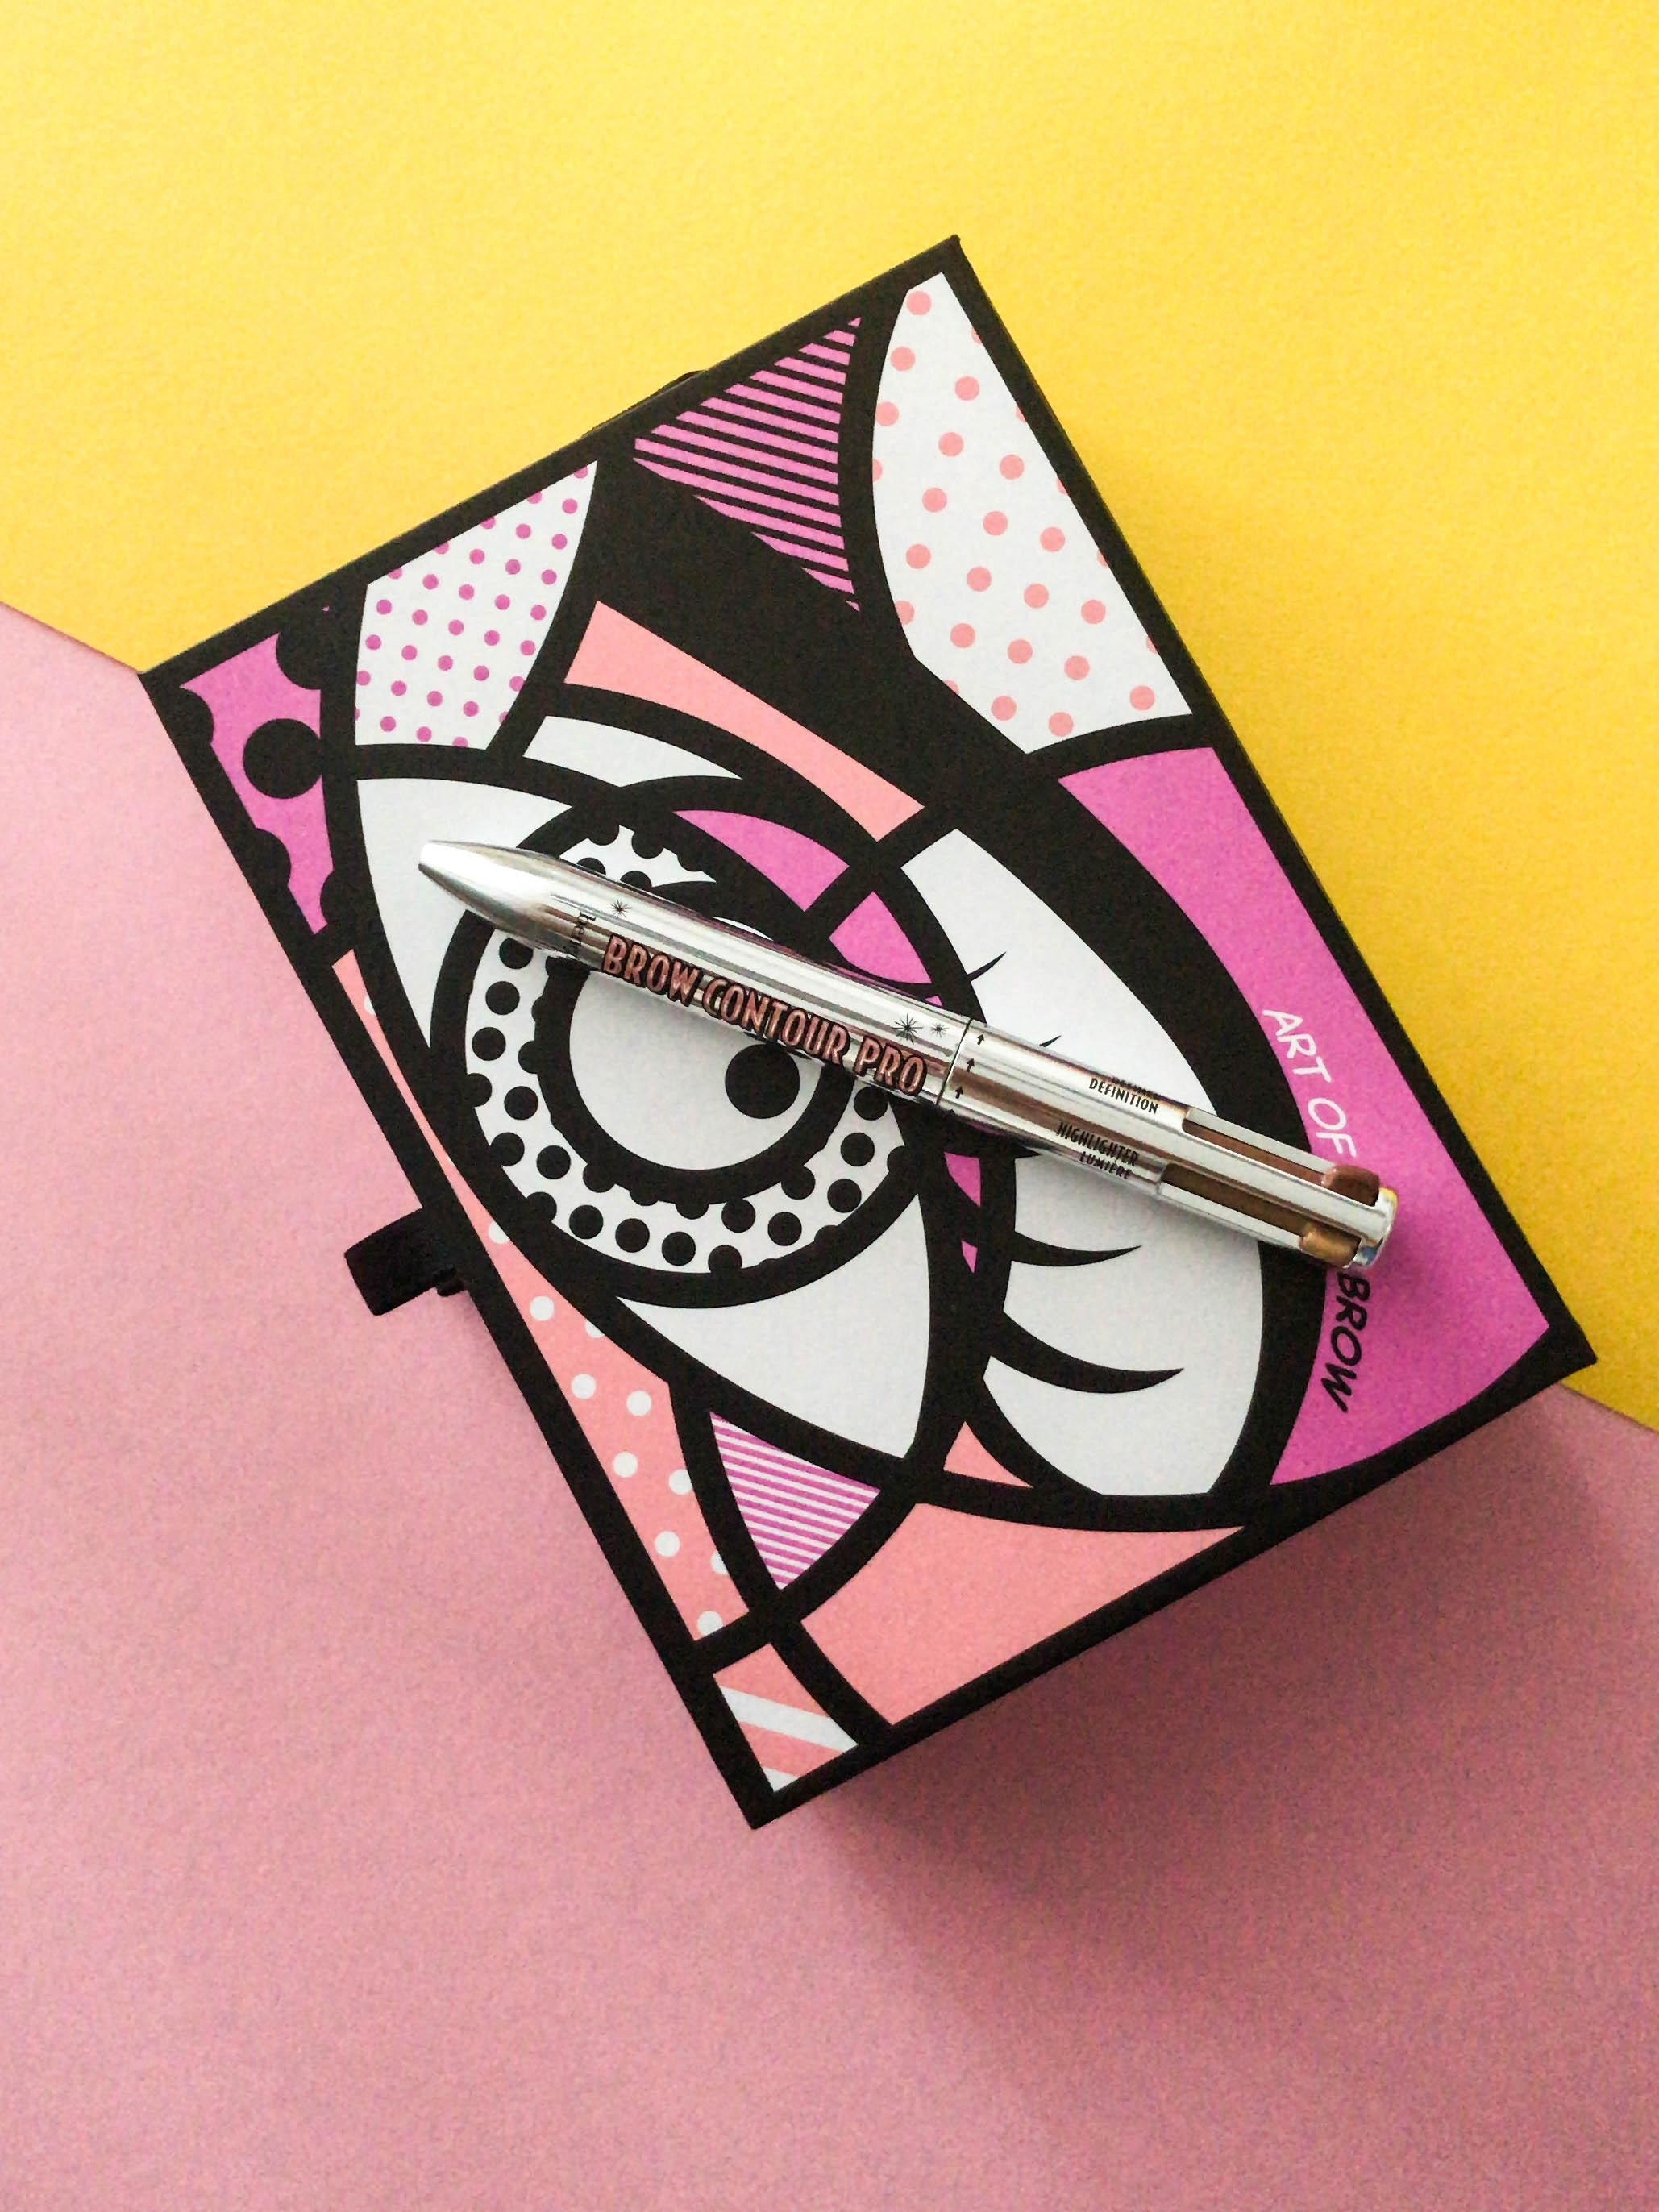 4-in-1: Der Brow Contour Pro Stift von Benefit mit 2x Brauenfarbe, Concealer & Highlighter #beautylieblinge #benefit